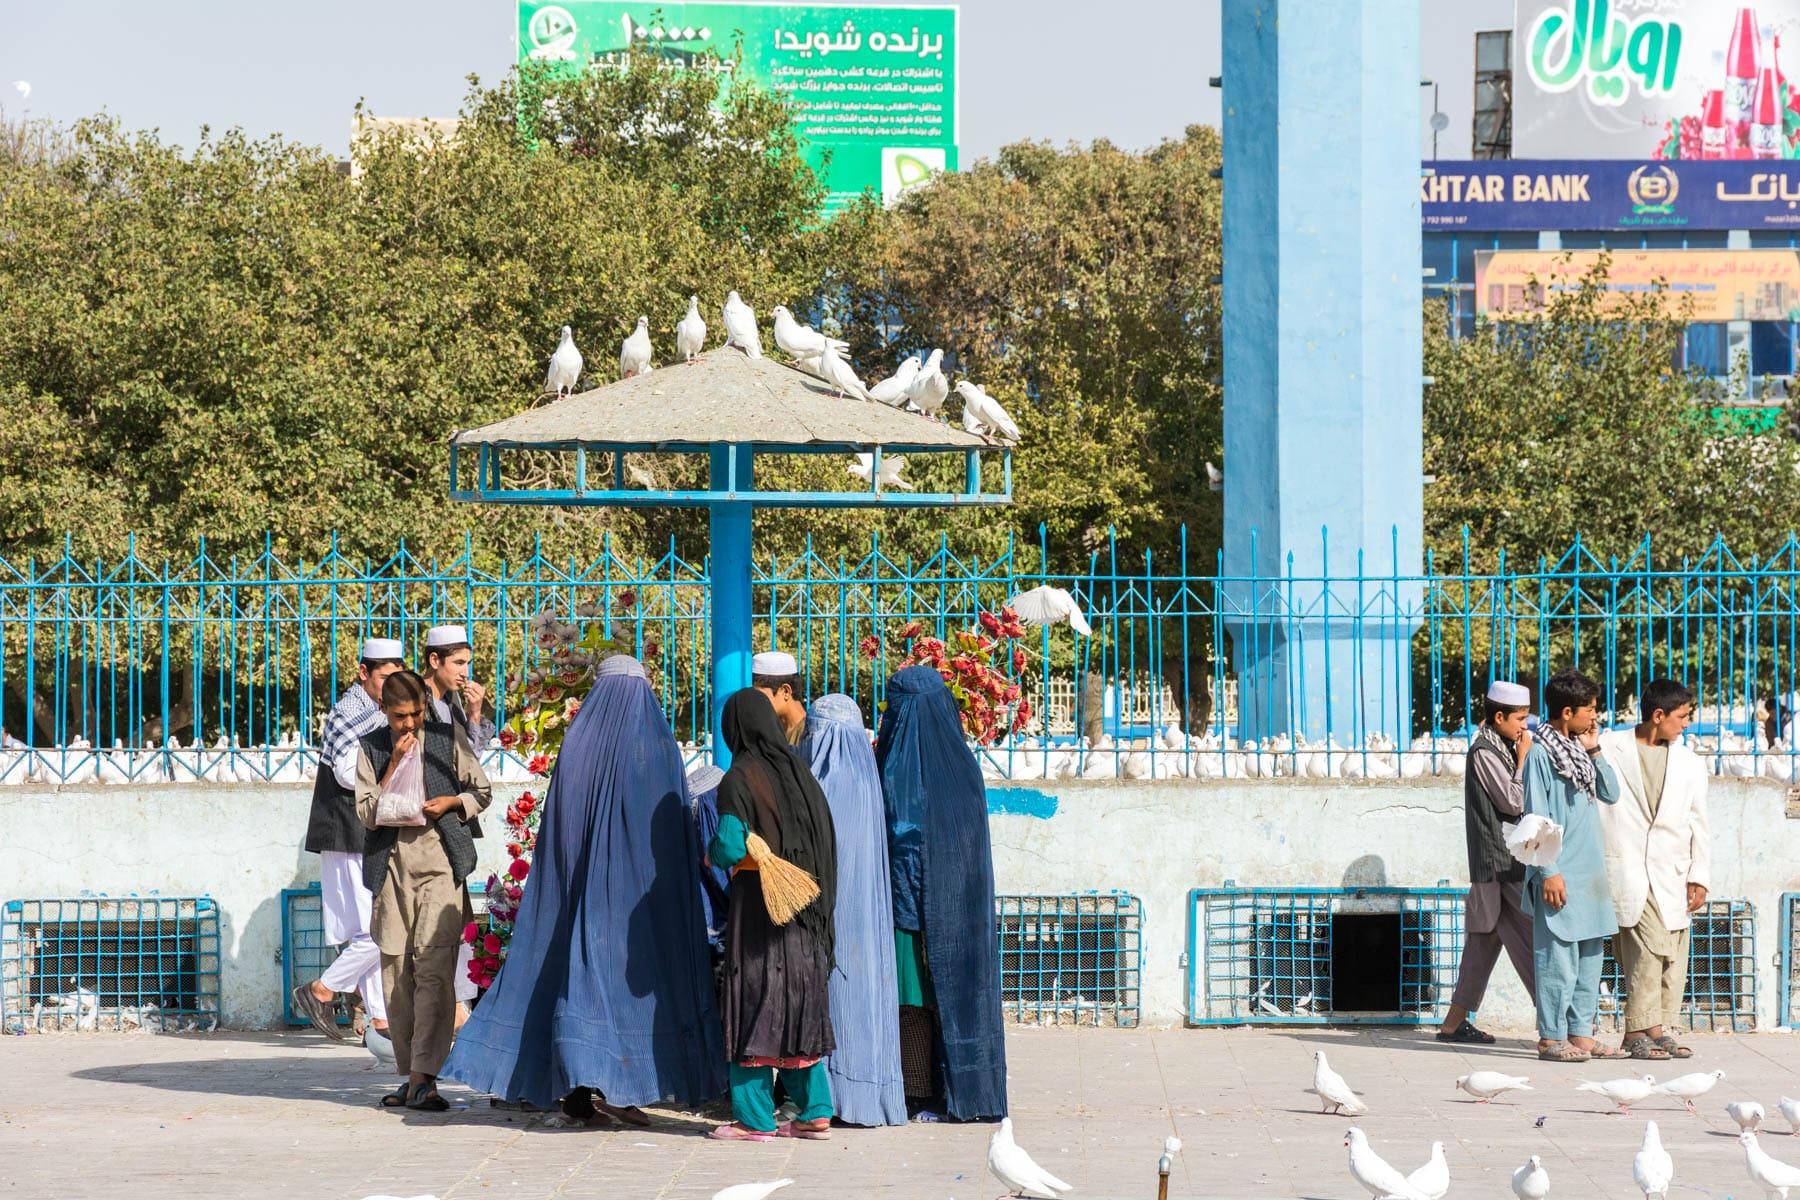 Photos of Mazar-i-Sharif, Afghanistan - Boys and women clustering to feed the white pigeons around the Blue Mosque in Mazar - Lost With Purpose